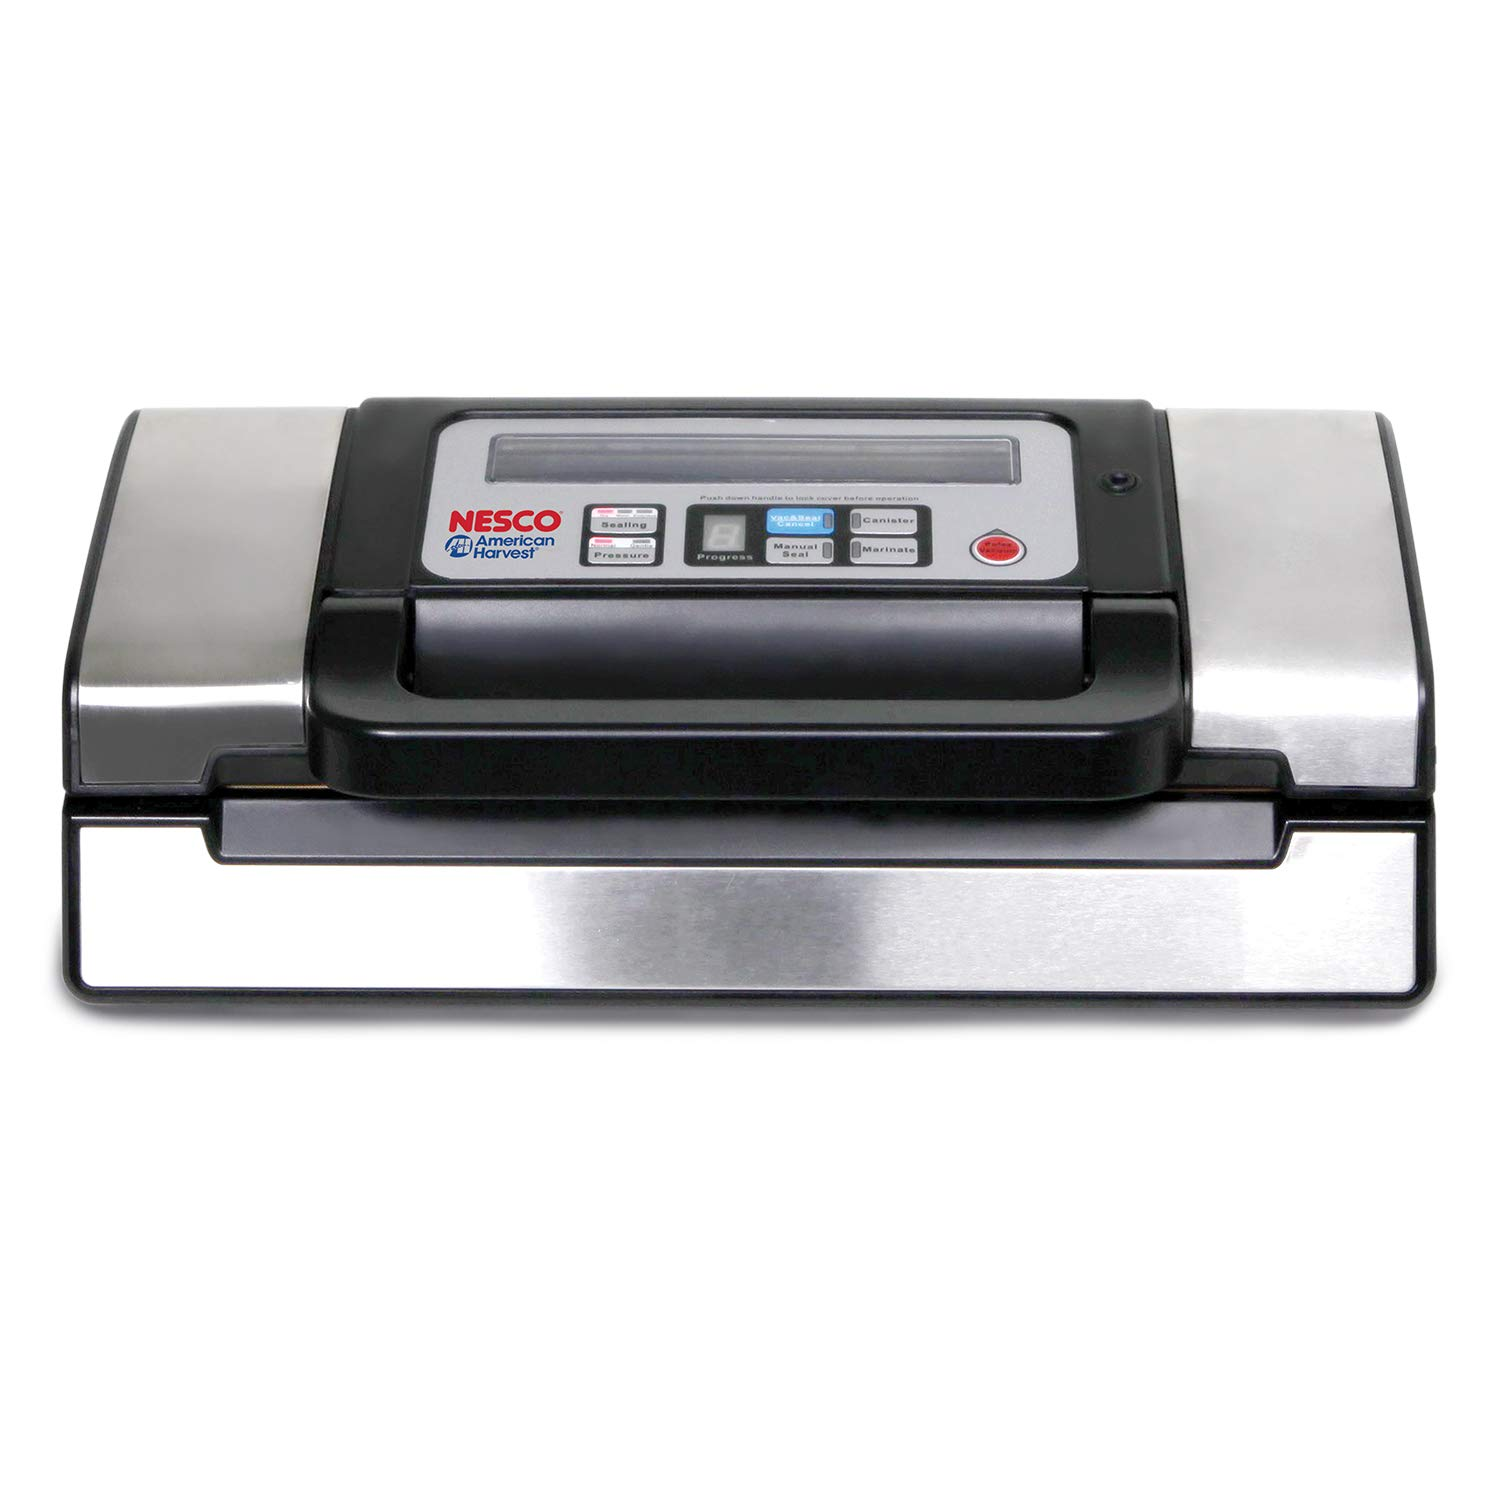 NESCO VS-12, Deluxe Vacuum Sealer with Bag Starter Kit and Viewing Lid, Compact Design, Silver by Nesco